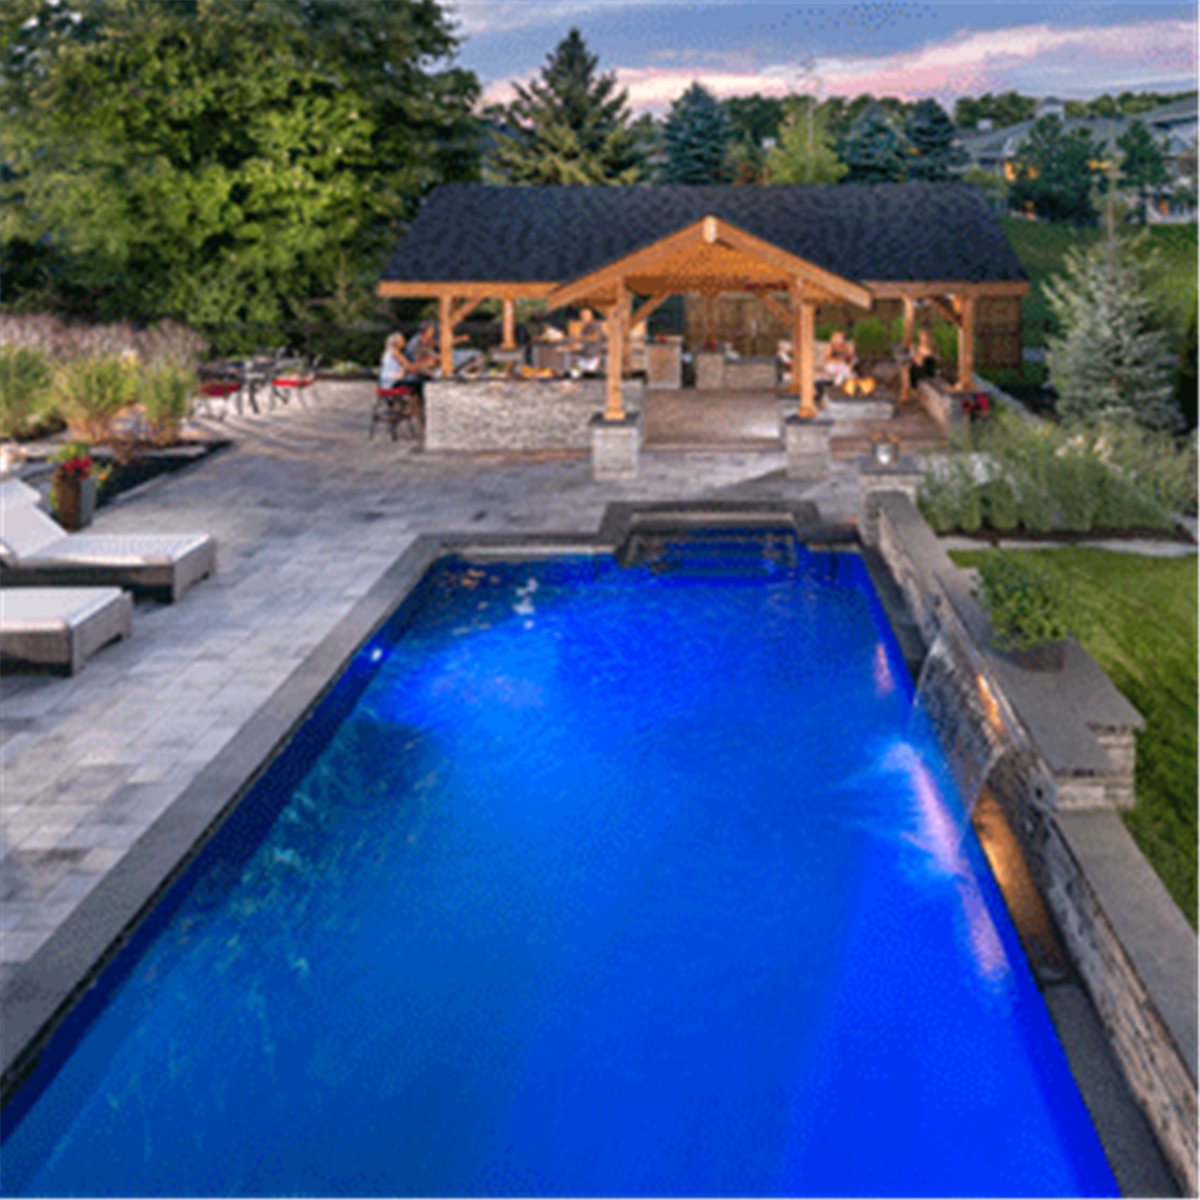 Are you thinking of installing a pool Here are some things to consider